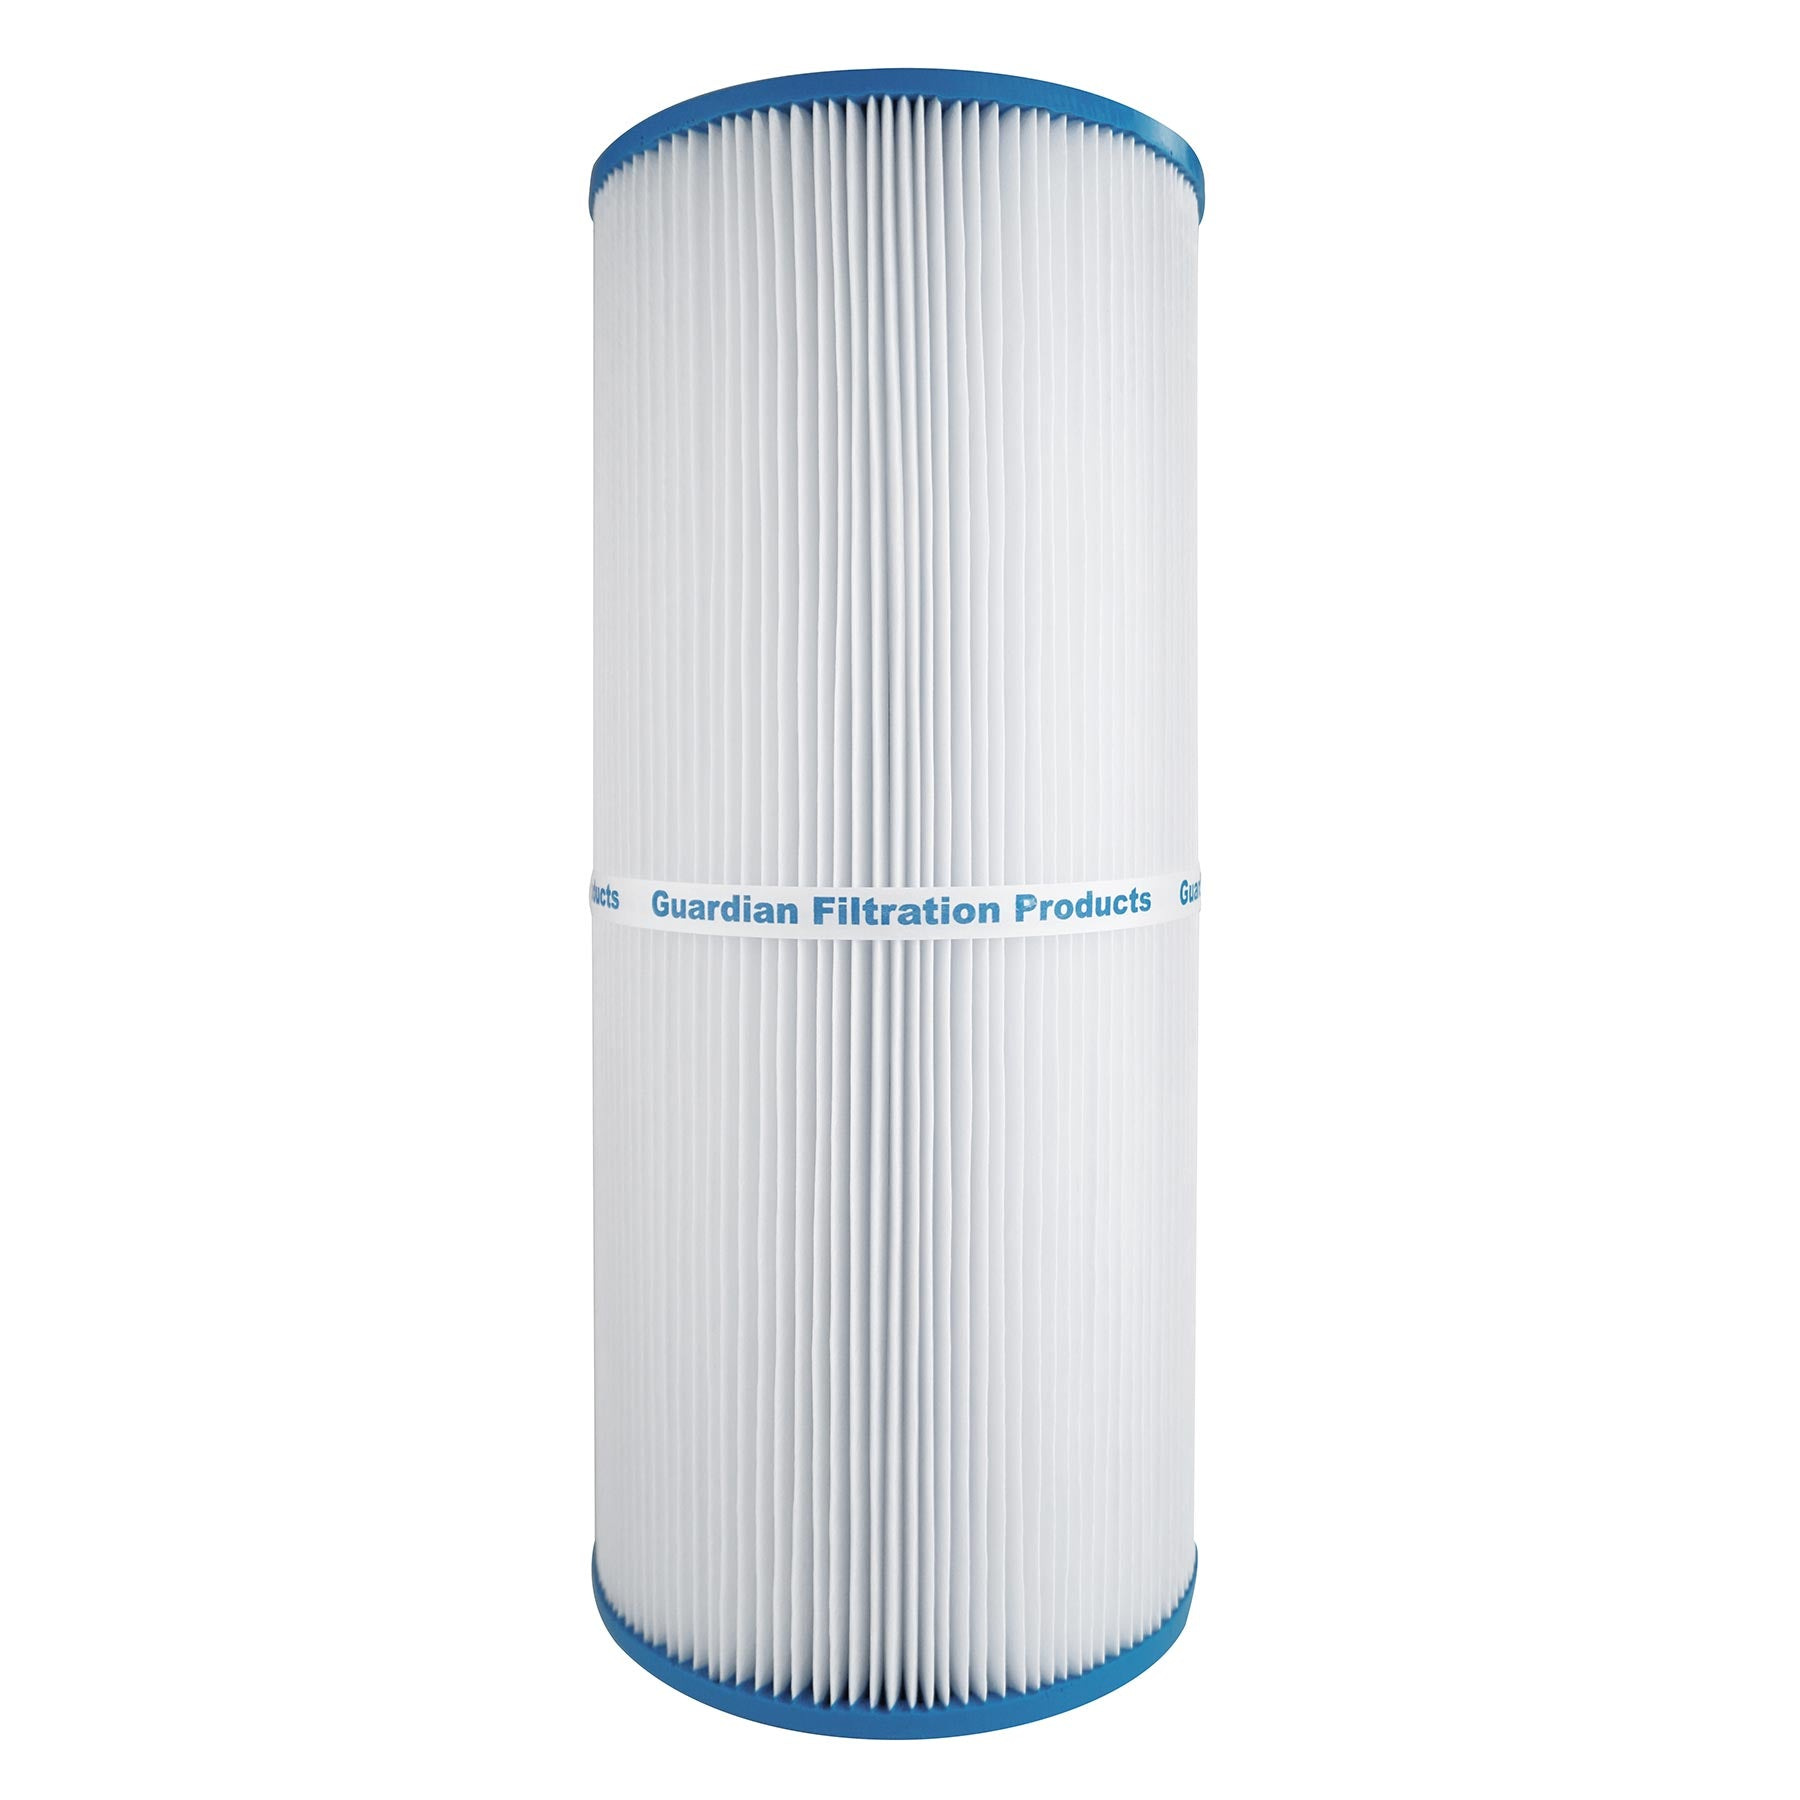 Replaces Unicel 6CH-960, Pleatco PJW60TL-F2S • Hot Tub & Spa Filter Cartridge-Filter Cartridge-FilterDeal.com